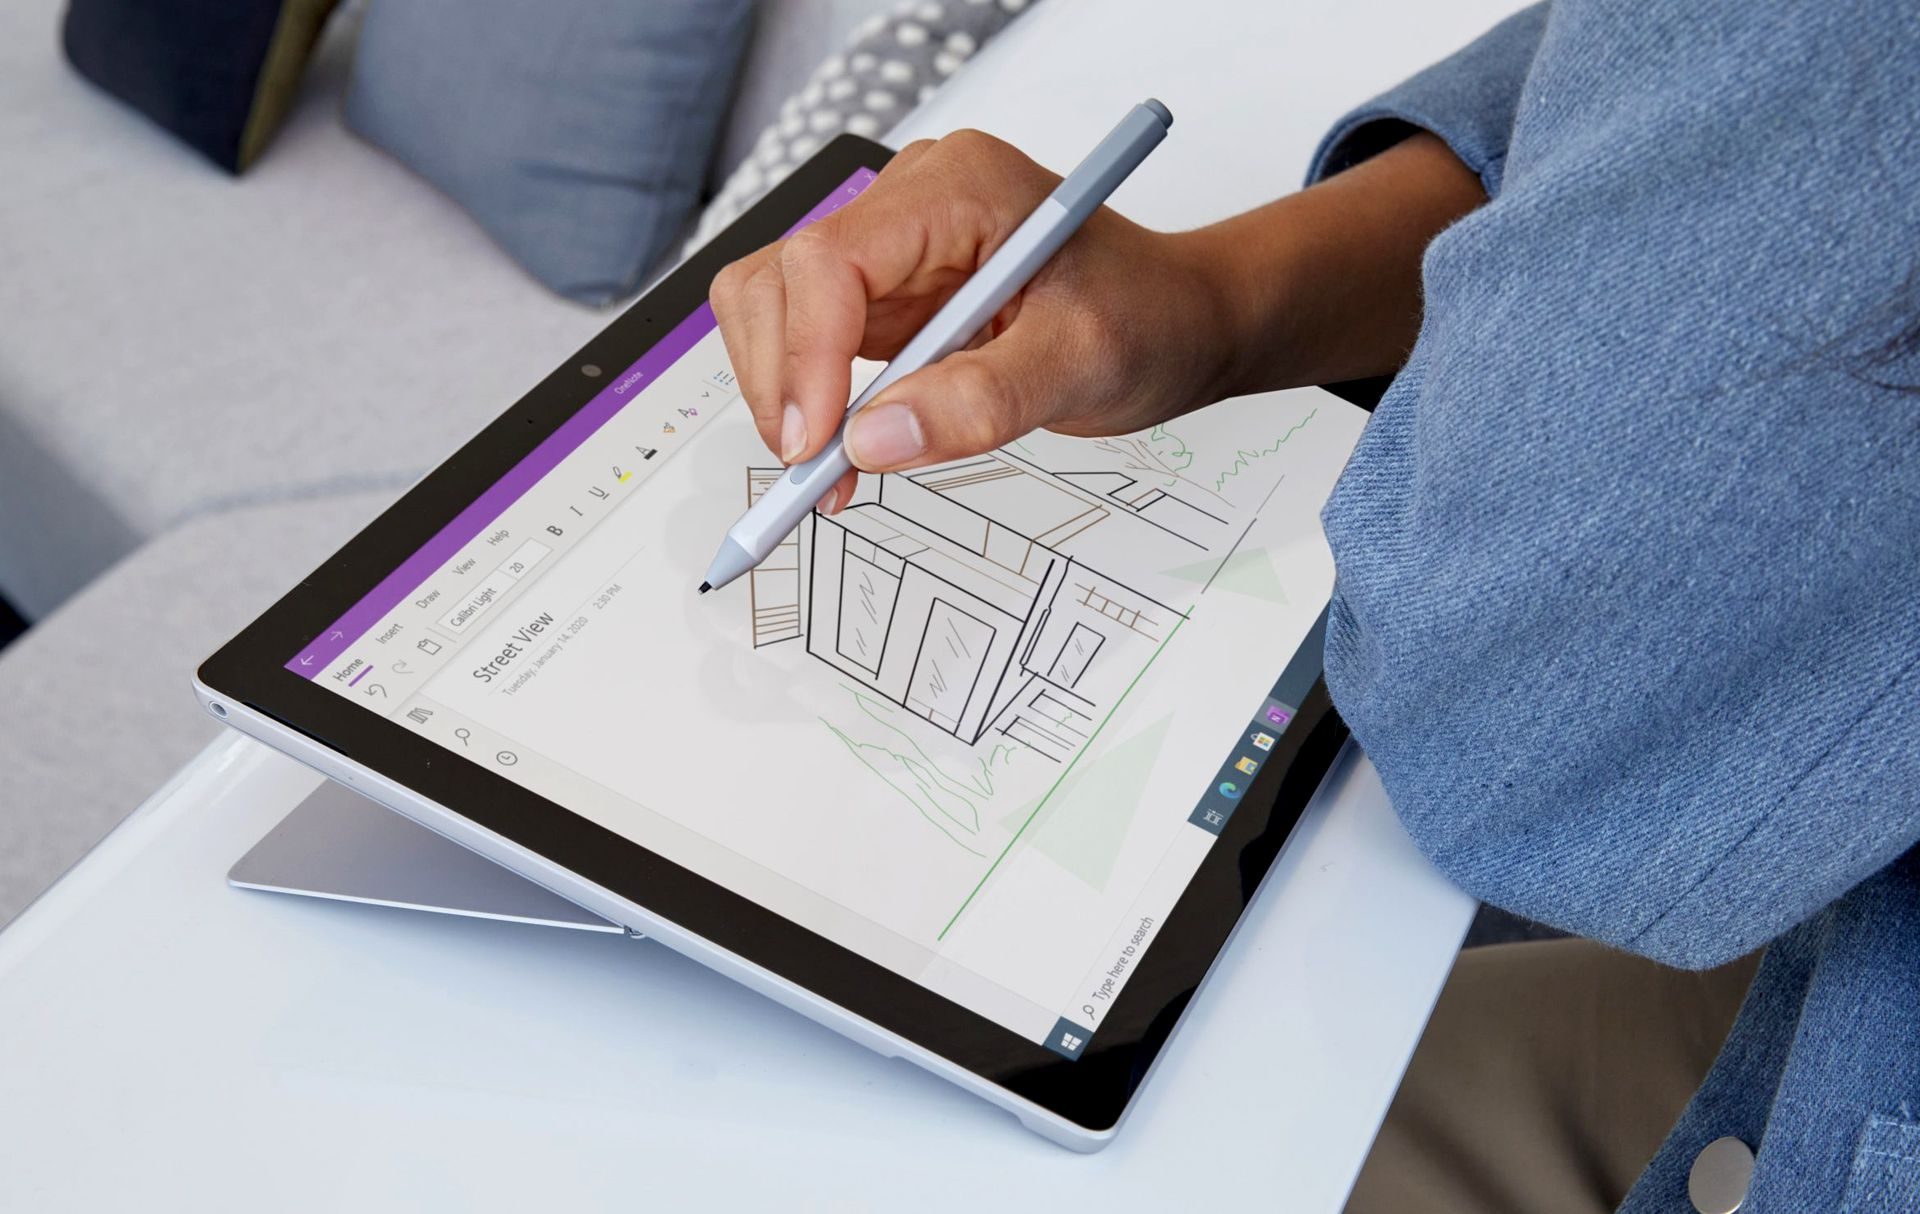 the 9 best drawing apps for surface pro 940f92a19f28401394c093156e1bfad7